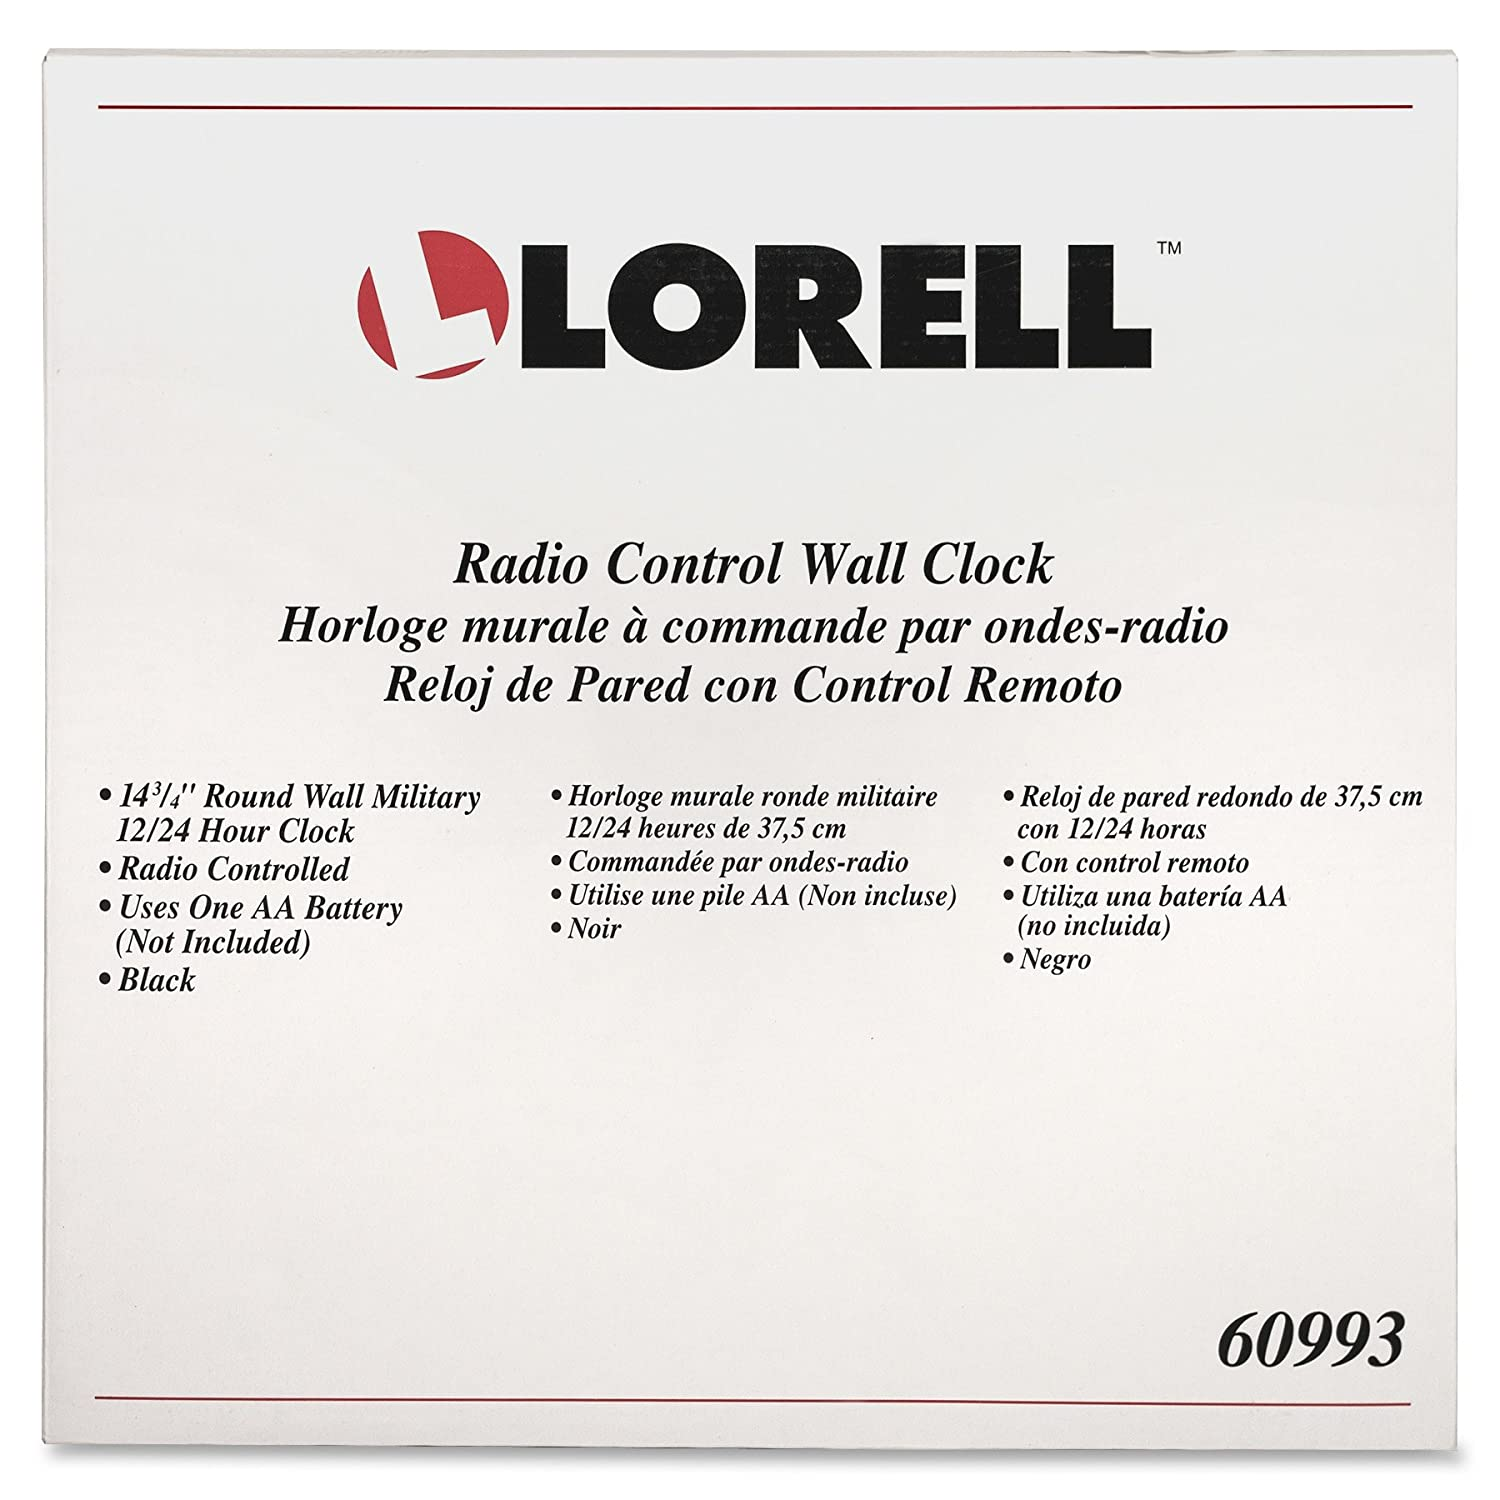 Amazon.com: Lorell Military Wall Clock, 14-3/4-Inch, White Dial/Black Frame: Home & Kitchen